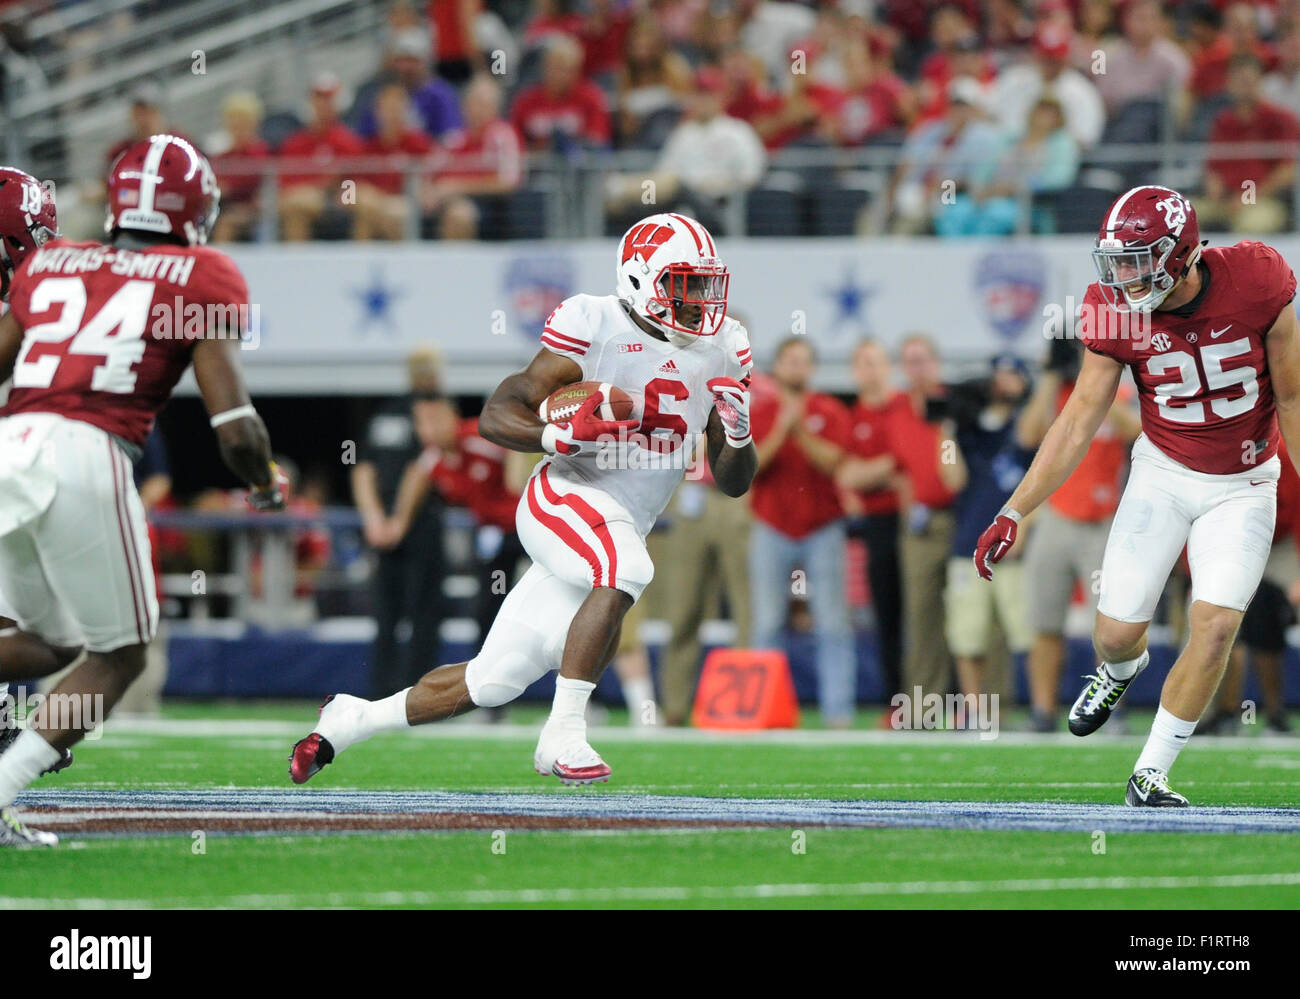 September 09, 2015: Wisconsin Badgers running back Corey Clement #6 in an NCAA Advocate Classic Football game between - Stock Image